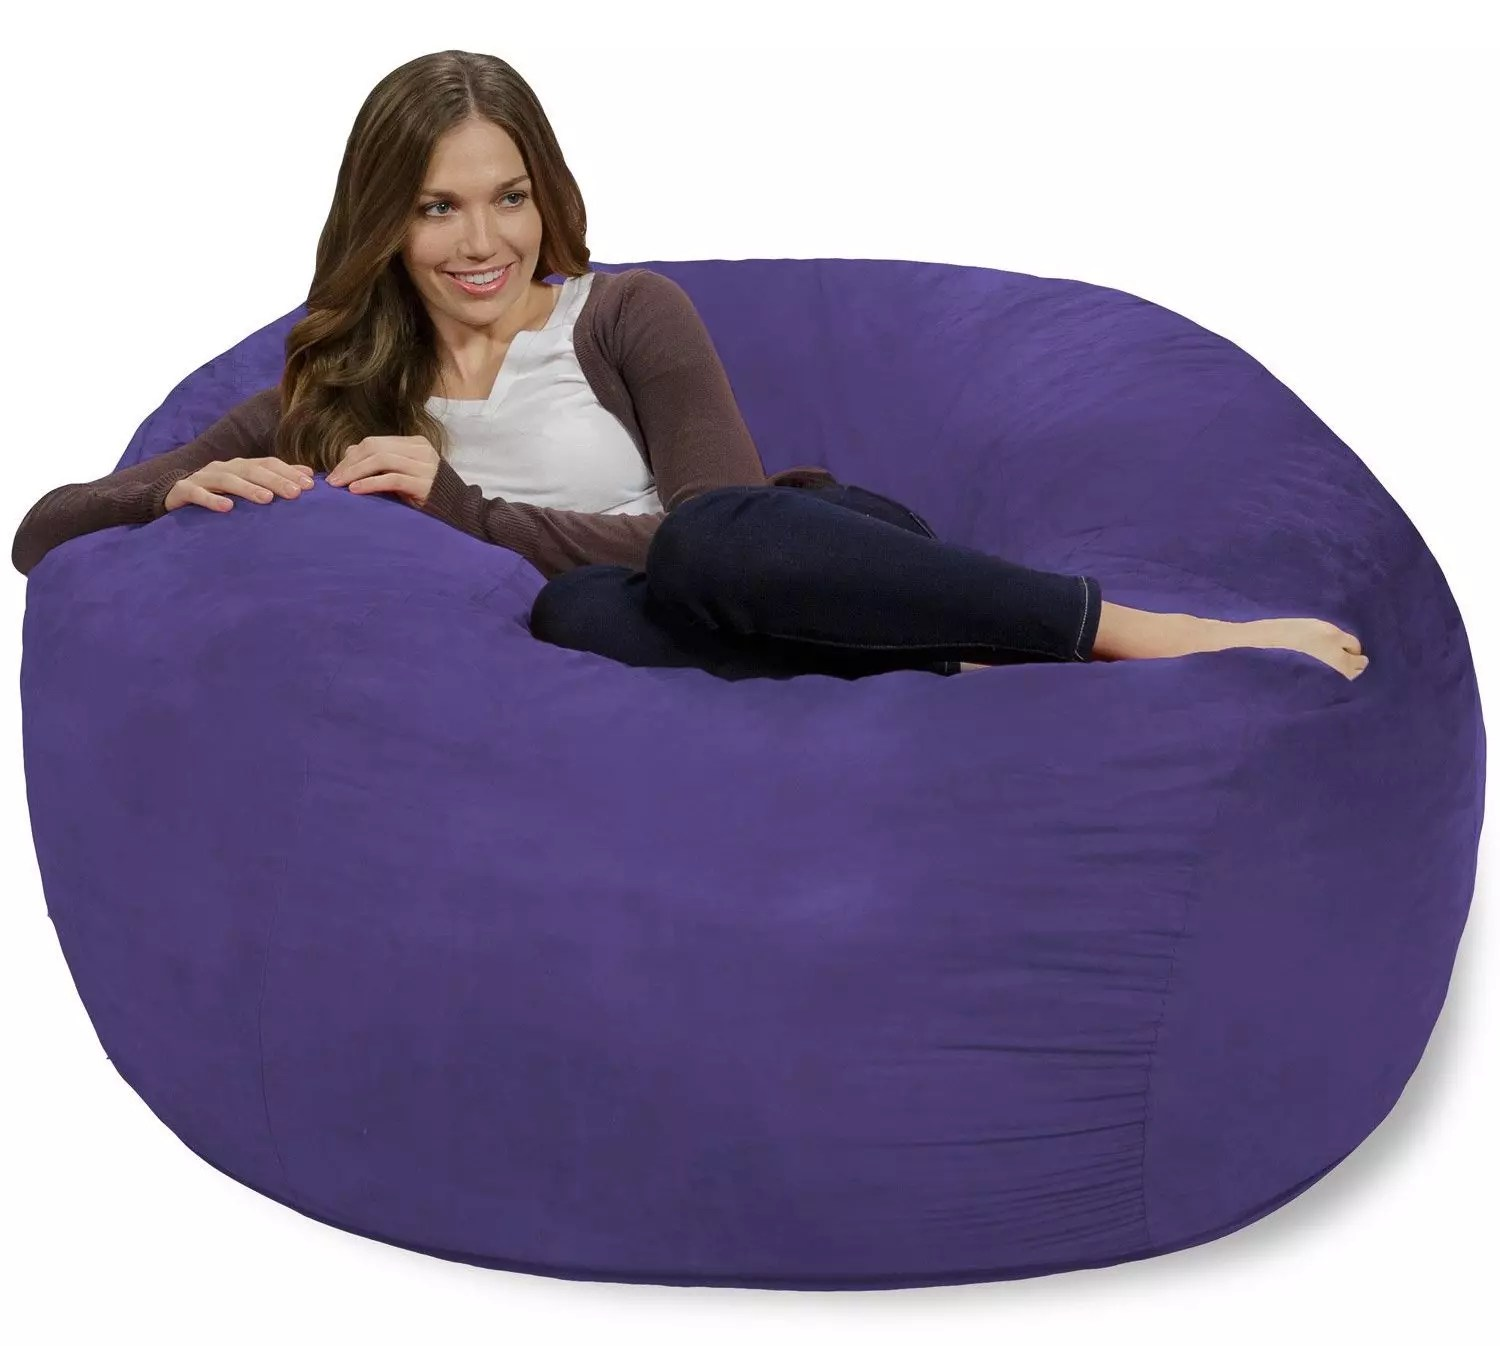 Bean Bag Chairs For Teens 50 Cool Gifts For Teens This Christmas 2018 Best Teen